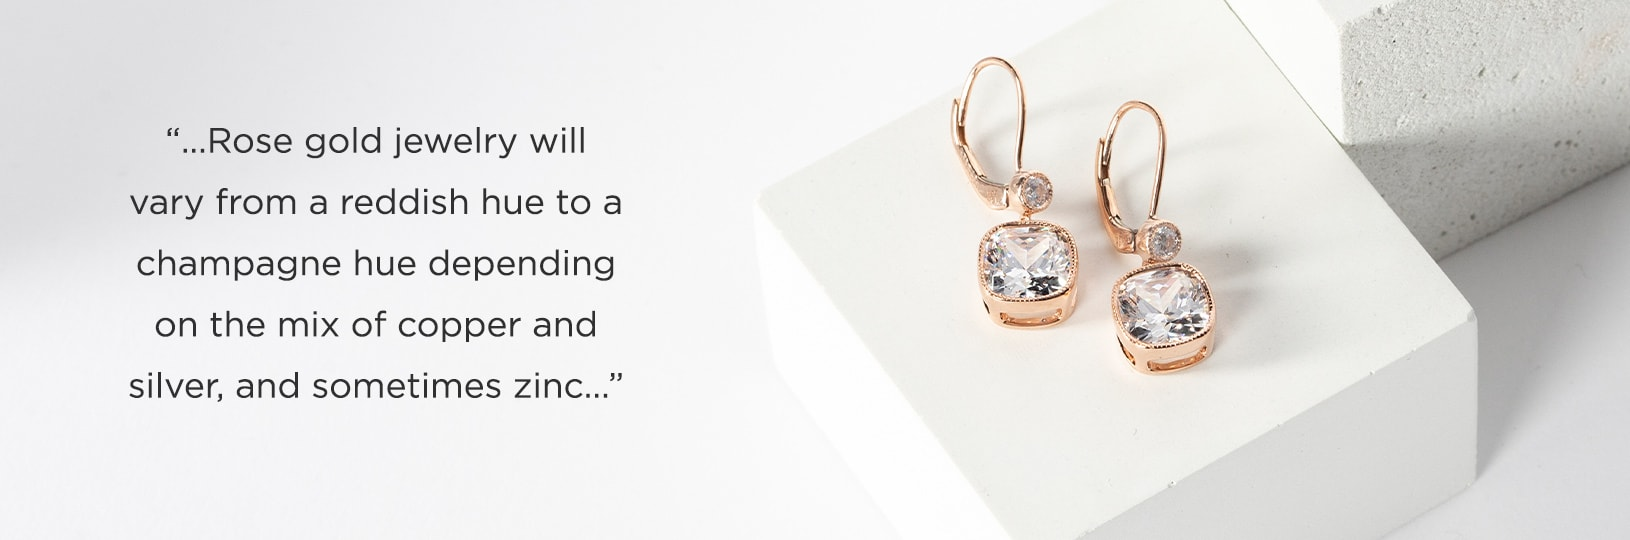 Rose gold's coloring will vary depending upon the amount of copper used